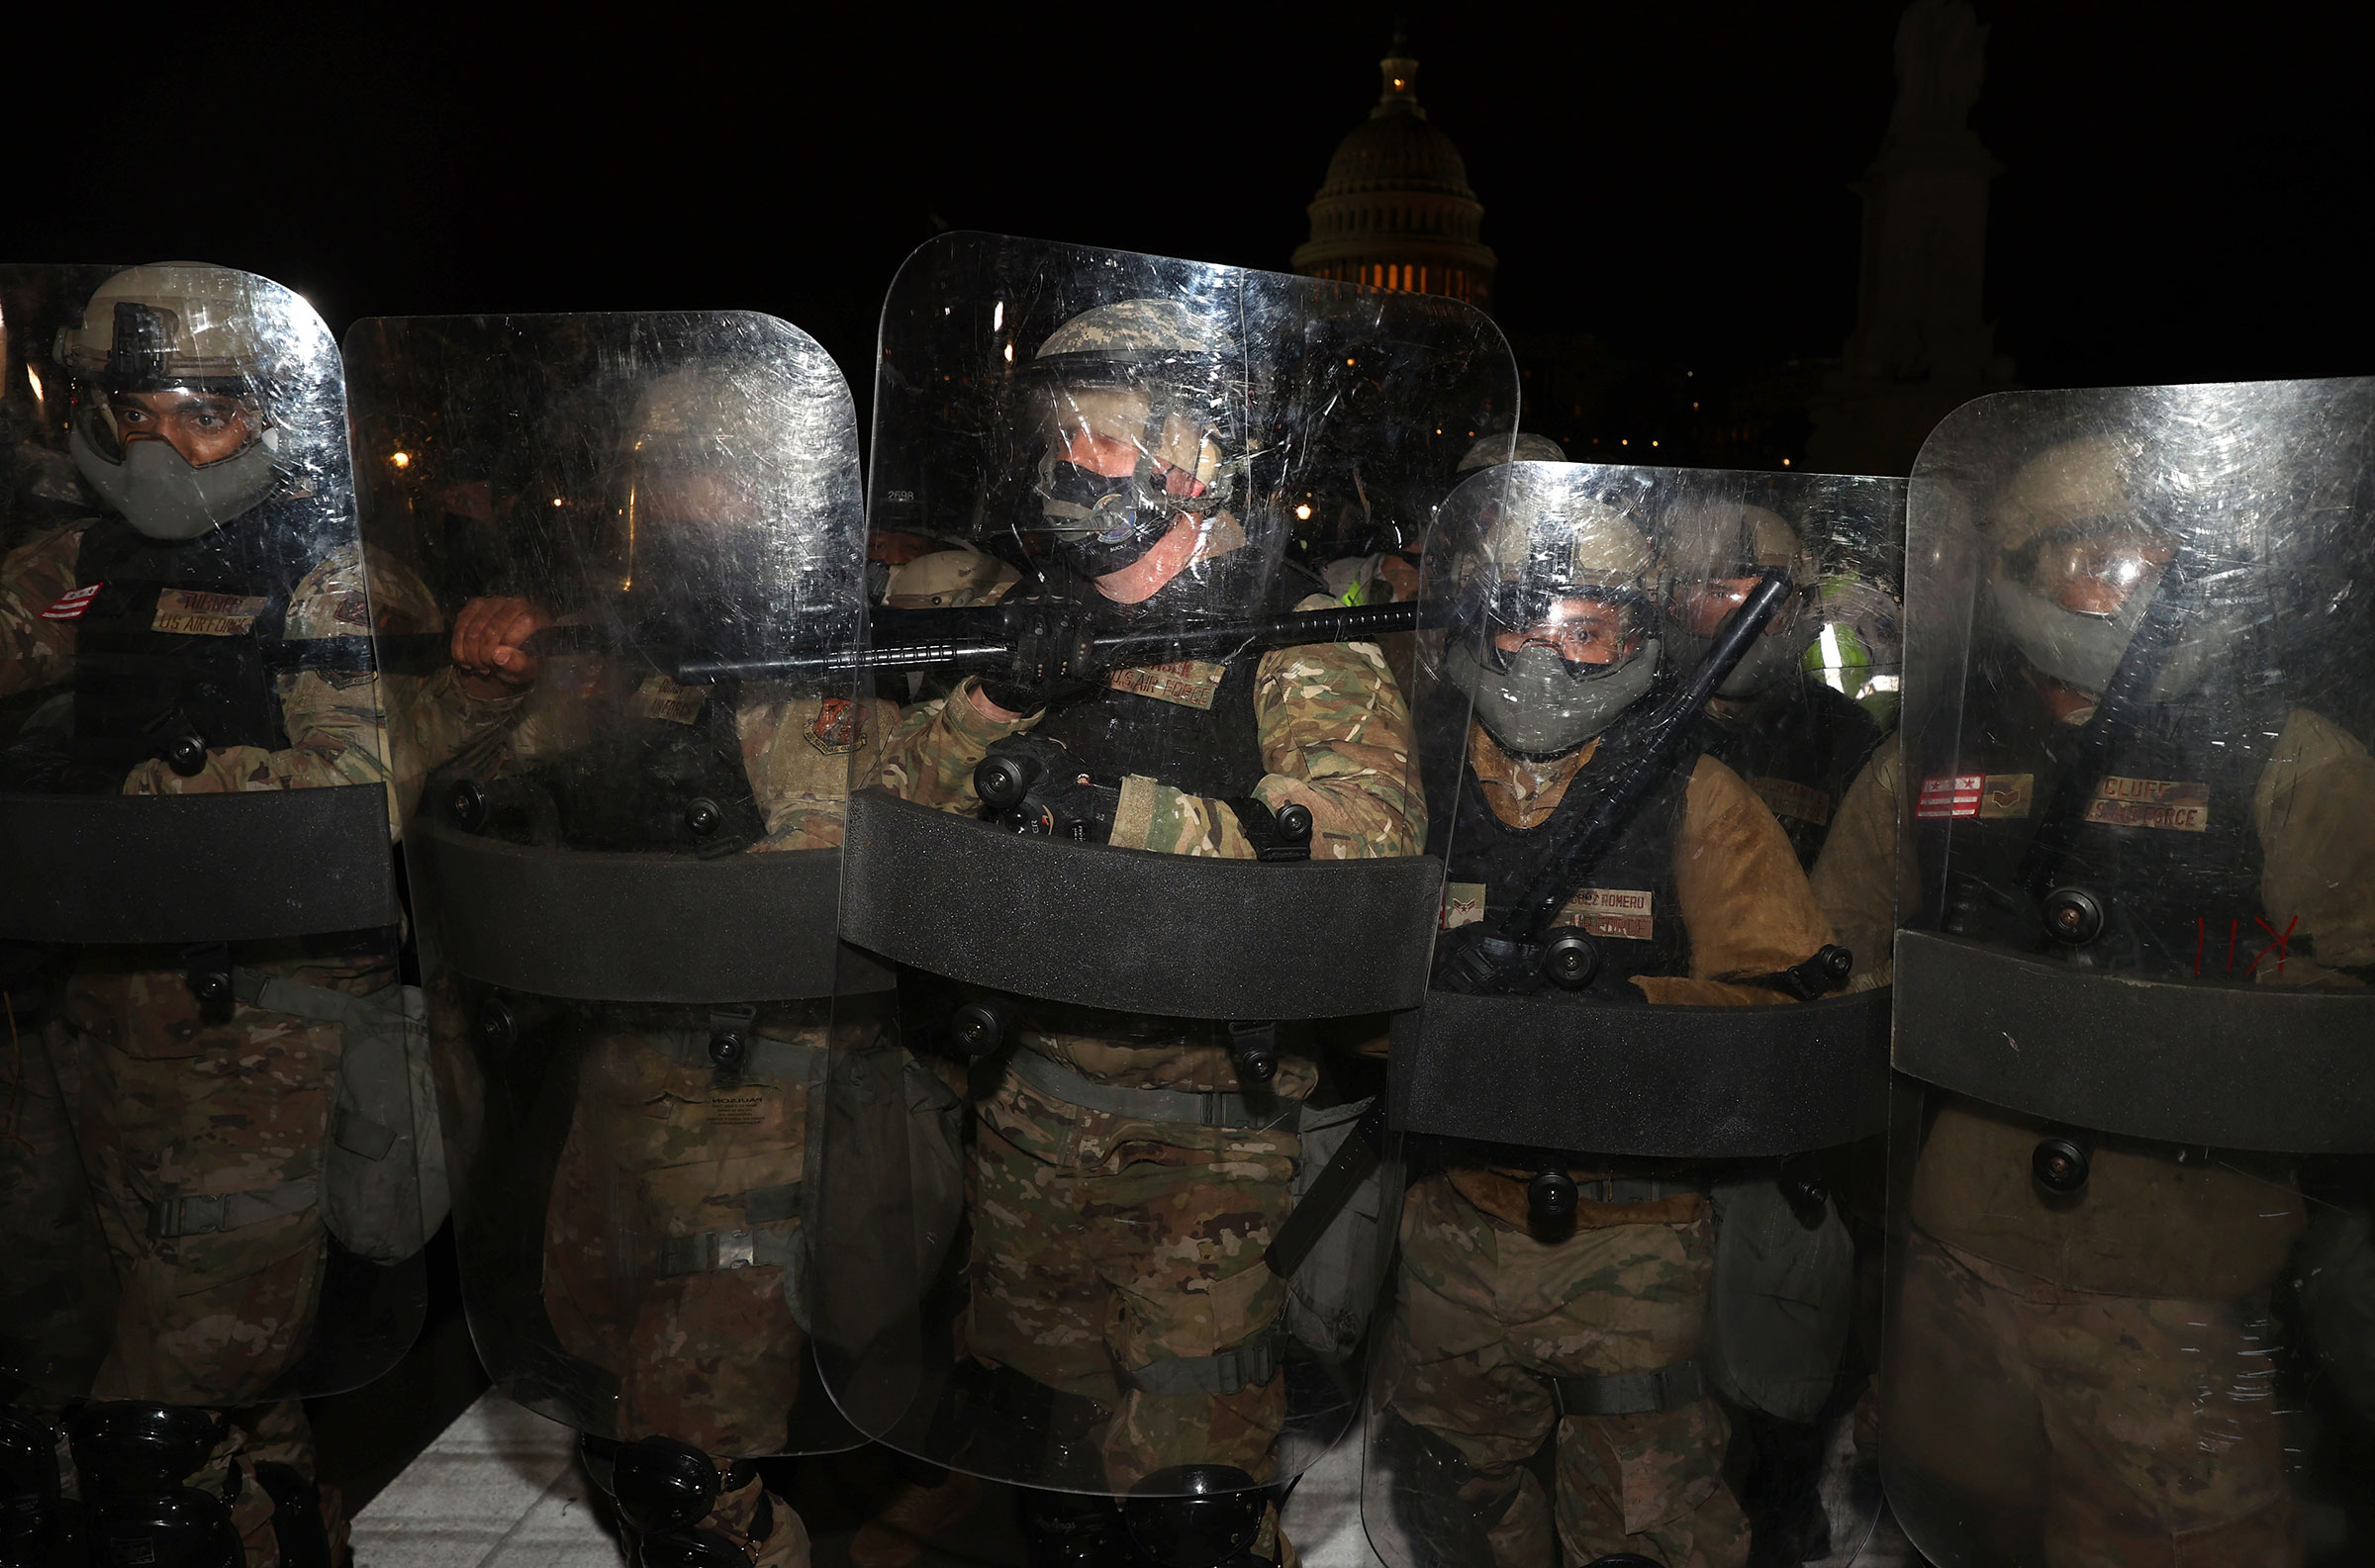 Members of the National Guard assist police officers in dispersing the mob of Trump supporters who were gathering at the Capitol.